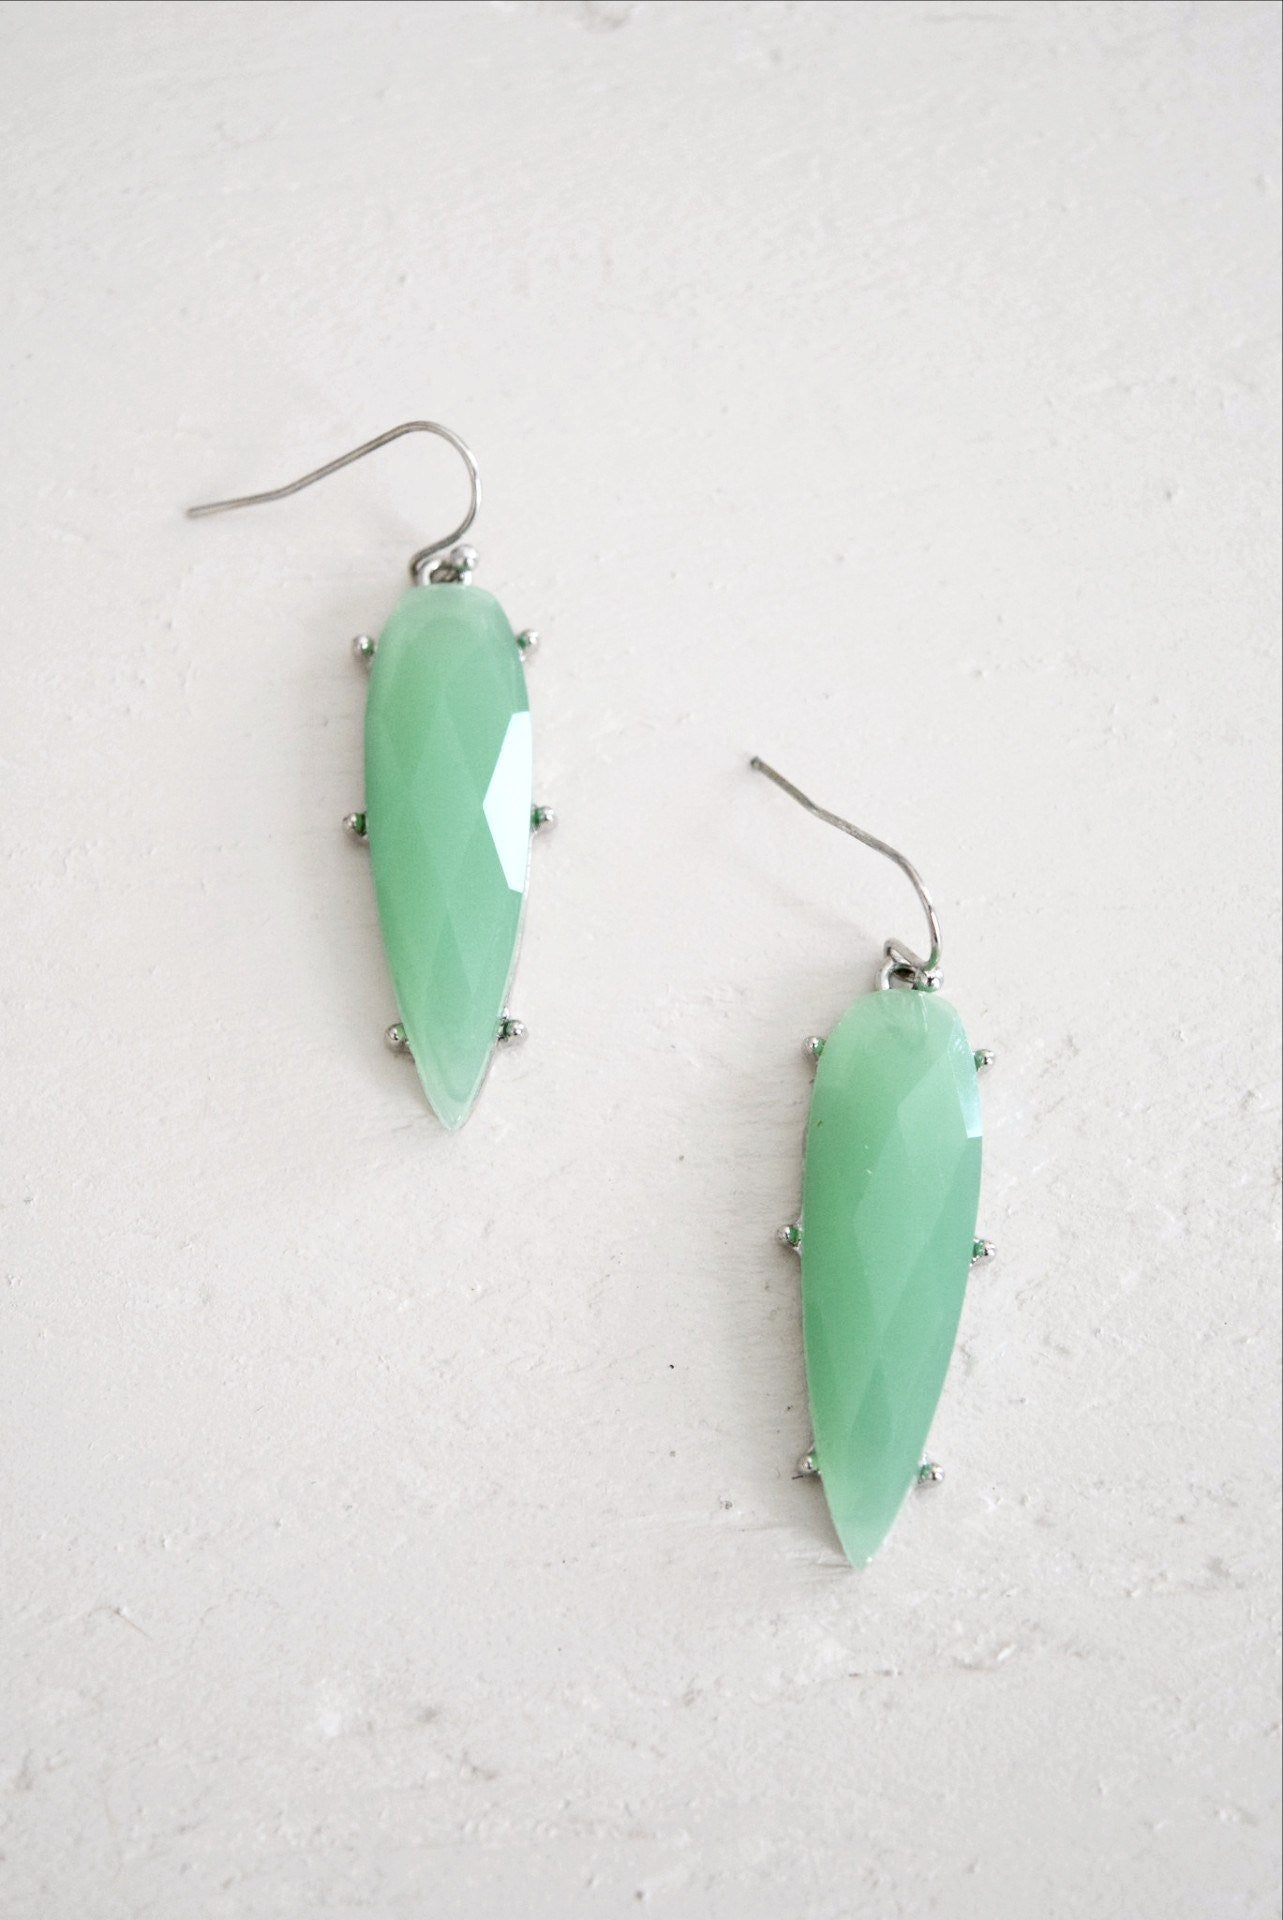 Green Crystal Drop Earrings - Earrings - MOD&SOUL Contemporary Women's Clothing and Jewelry - MOD&SOUL